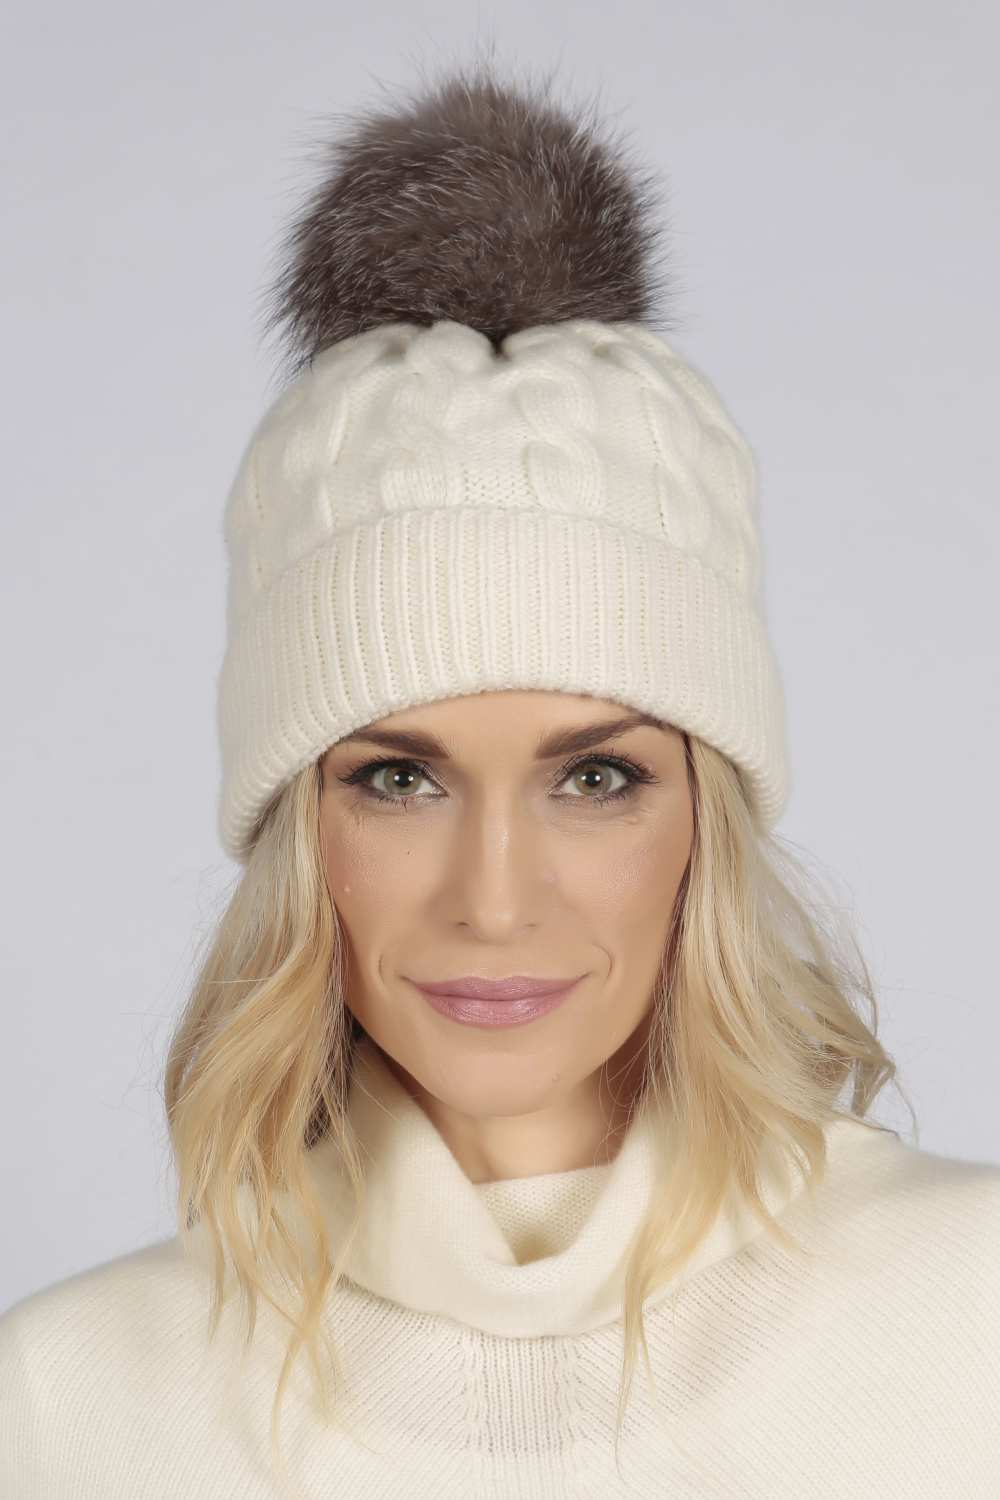 b07ff9036bc Details about Cream White pure cashmere fur pom pom cable knit beanie hat  MADE IN ITALY